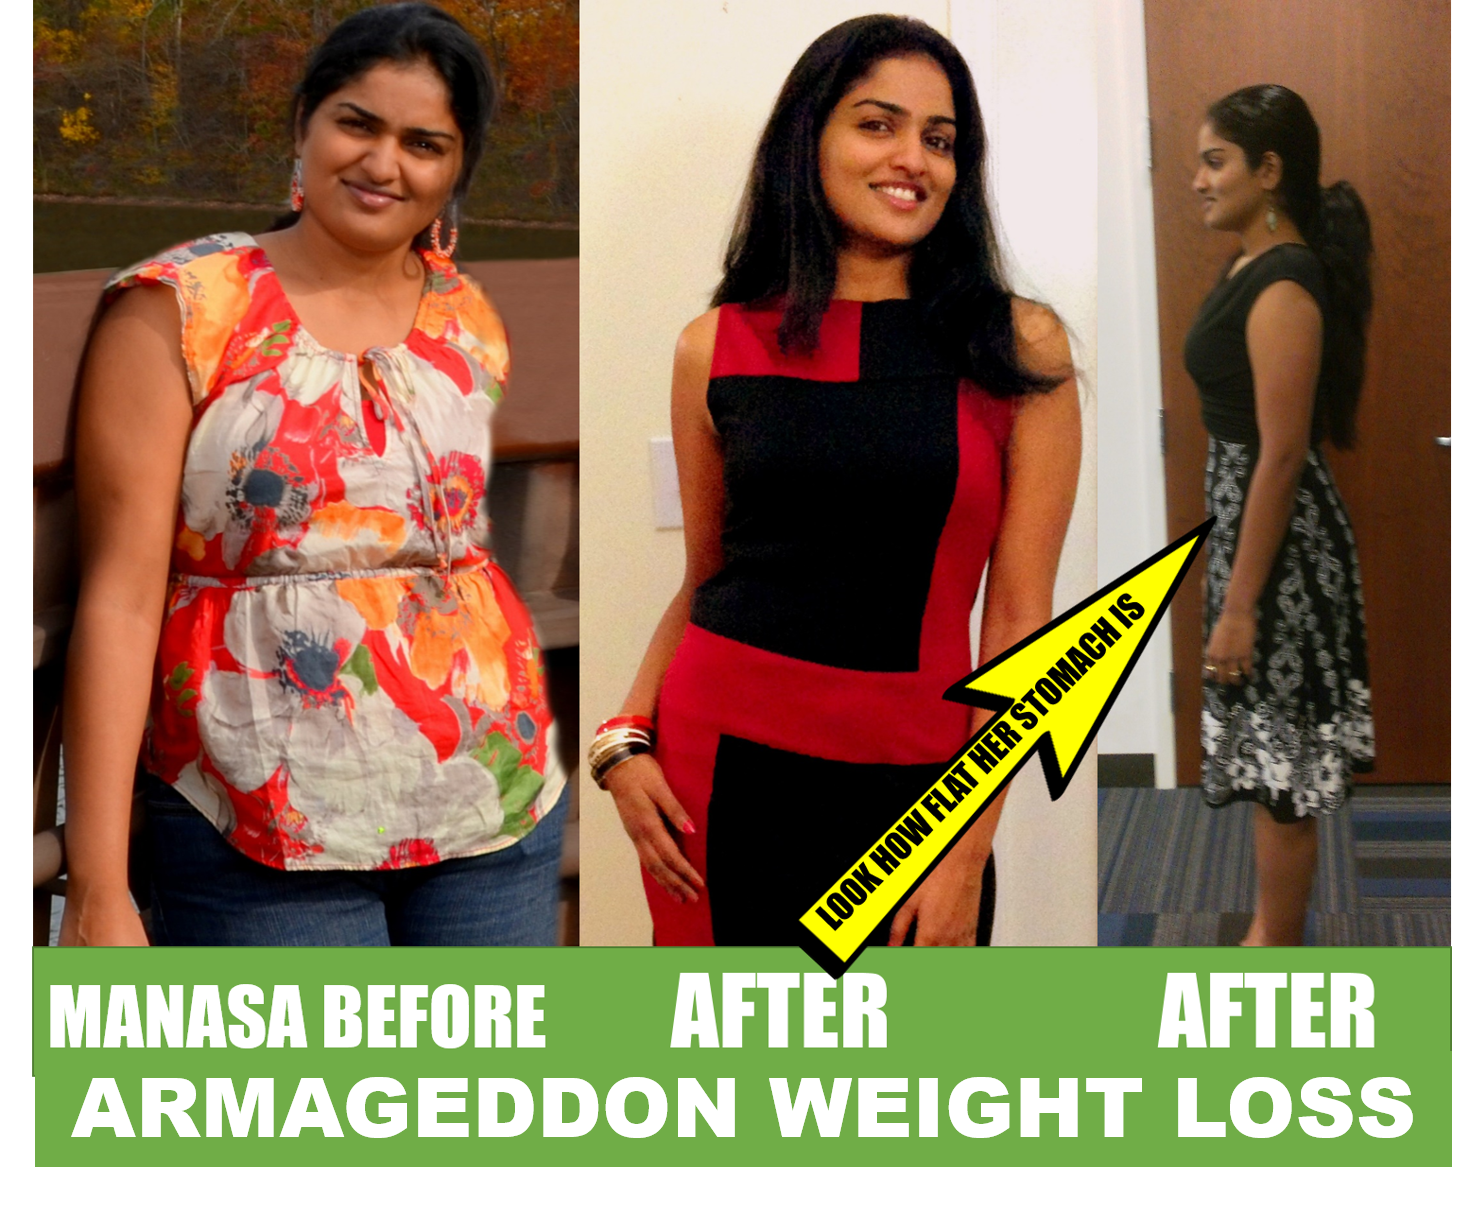 Manasa Reddy - Armageddon Weight Loss DVD Program - Best weight loss DVD for women and men - Best exercise DVD program - post pregnancy weight loss program- 2